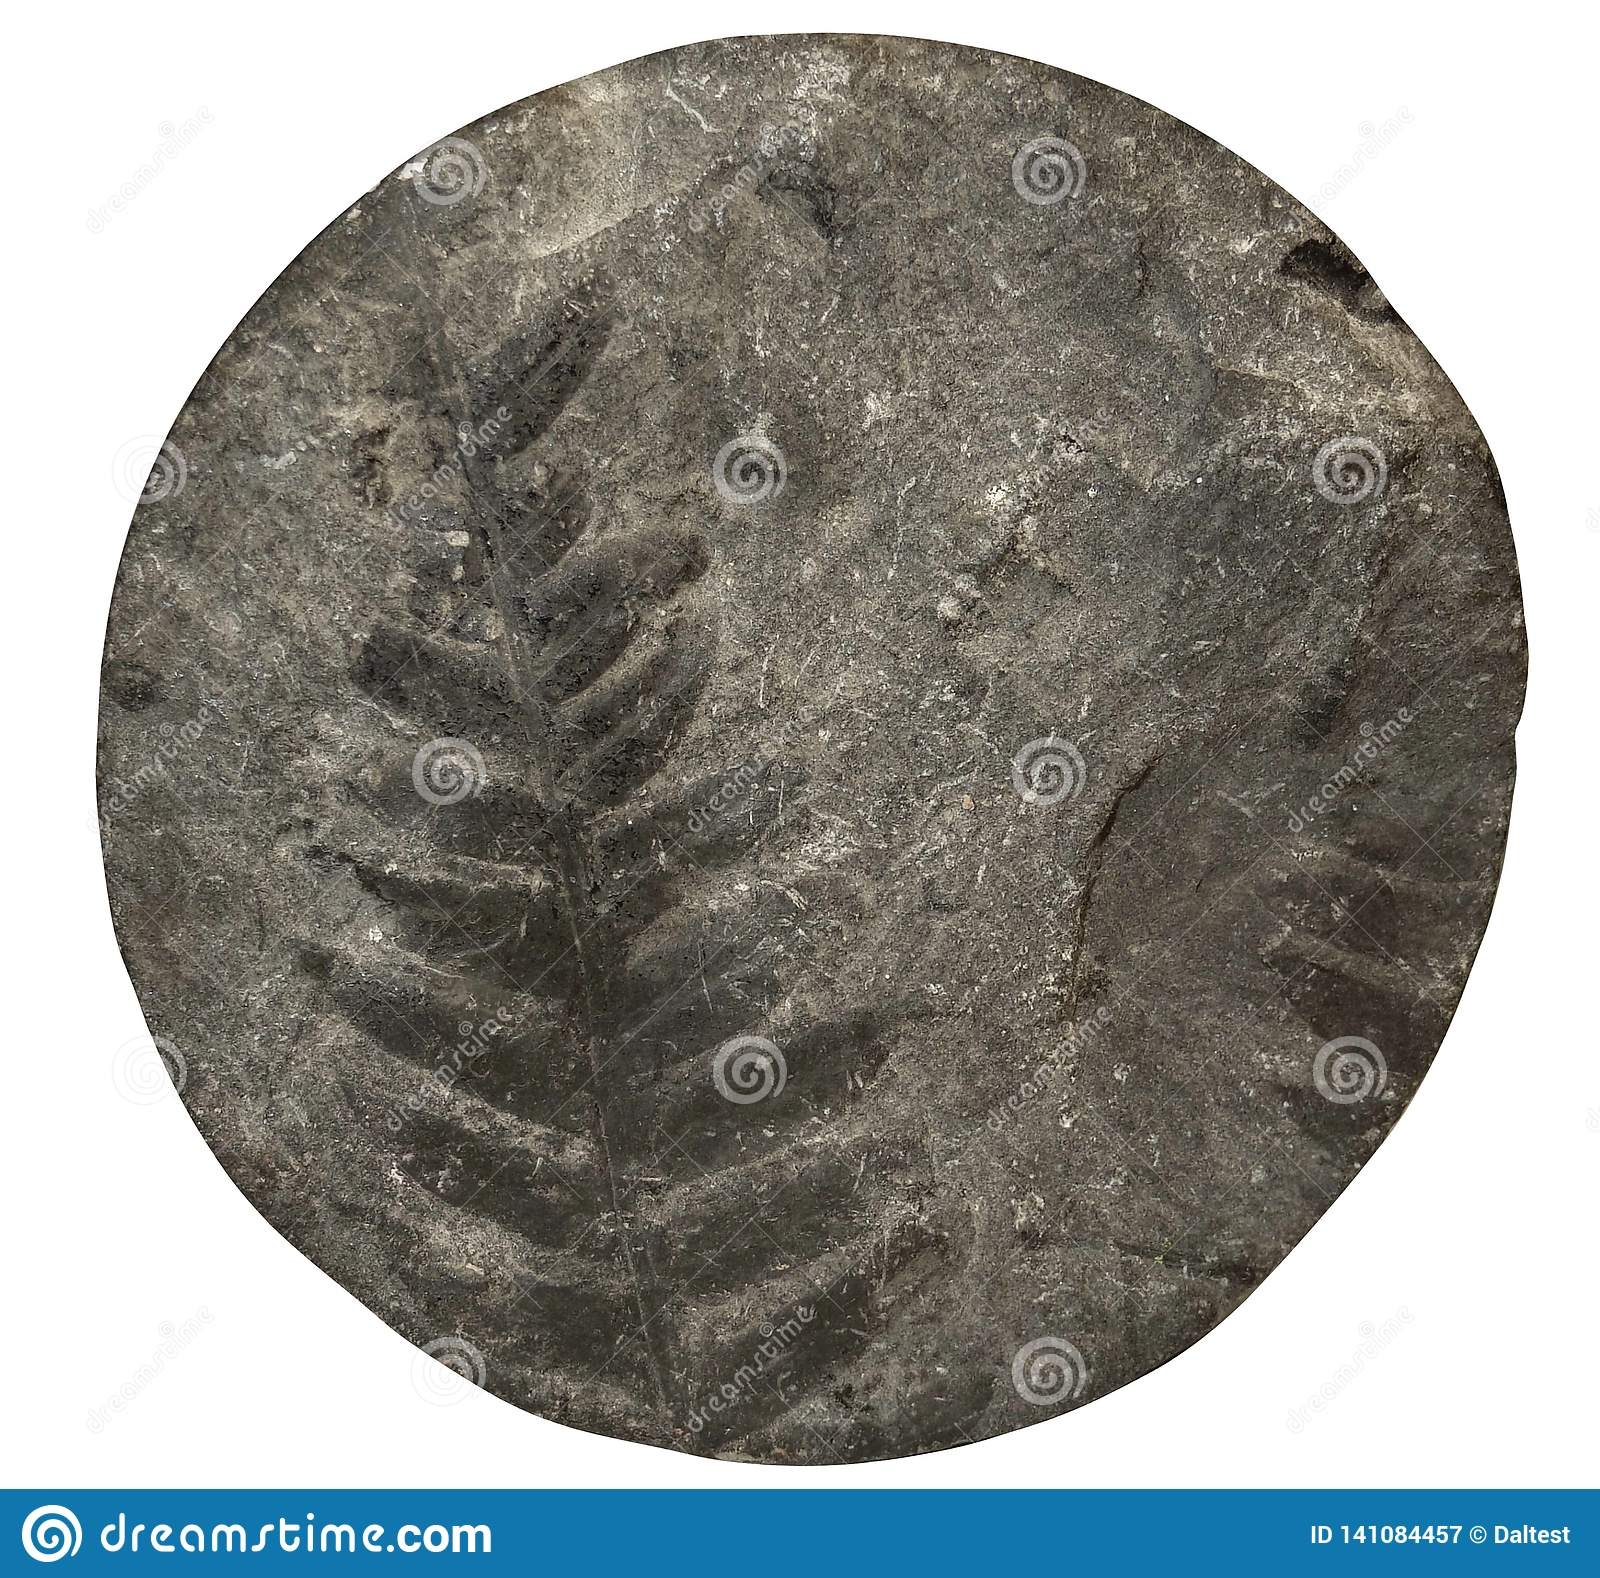 Fossil plant fern pattern on stone surface, drill core. Front view.